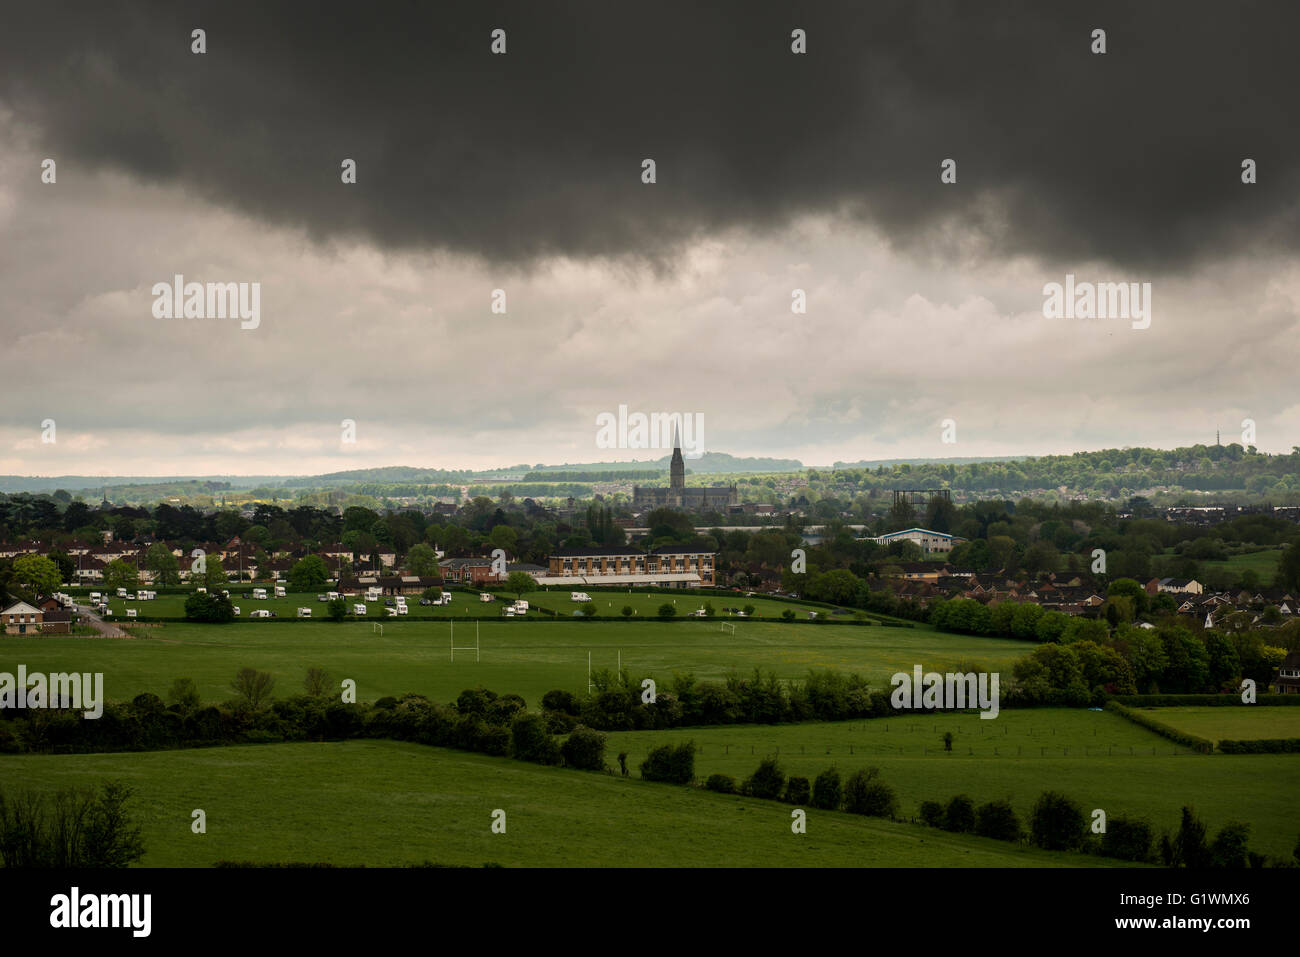 View of the Cathedral and City of Salisbury from Old Sarum, Wiltshire, UK Stock Photo